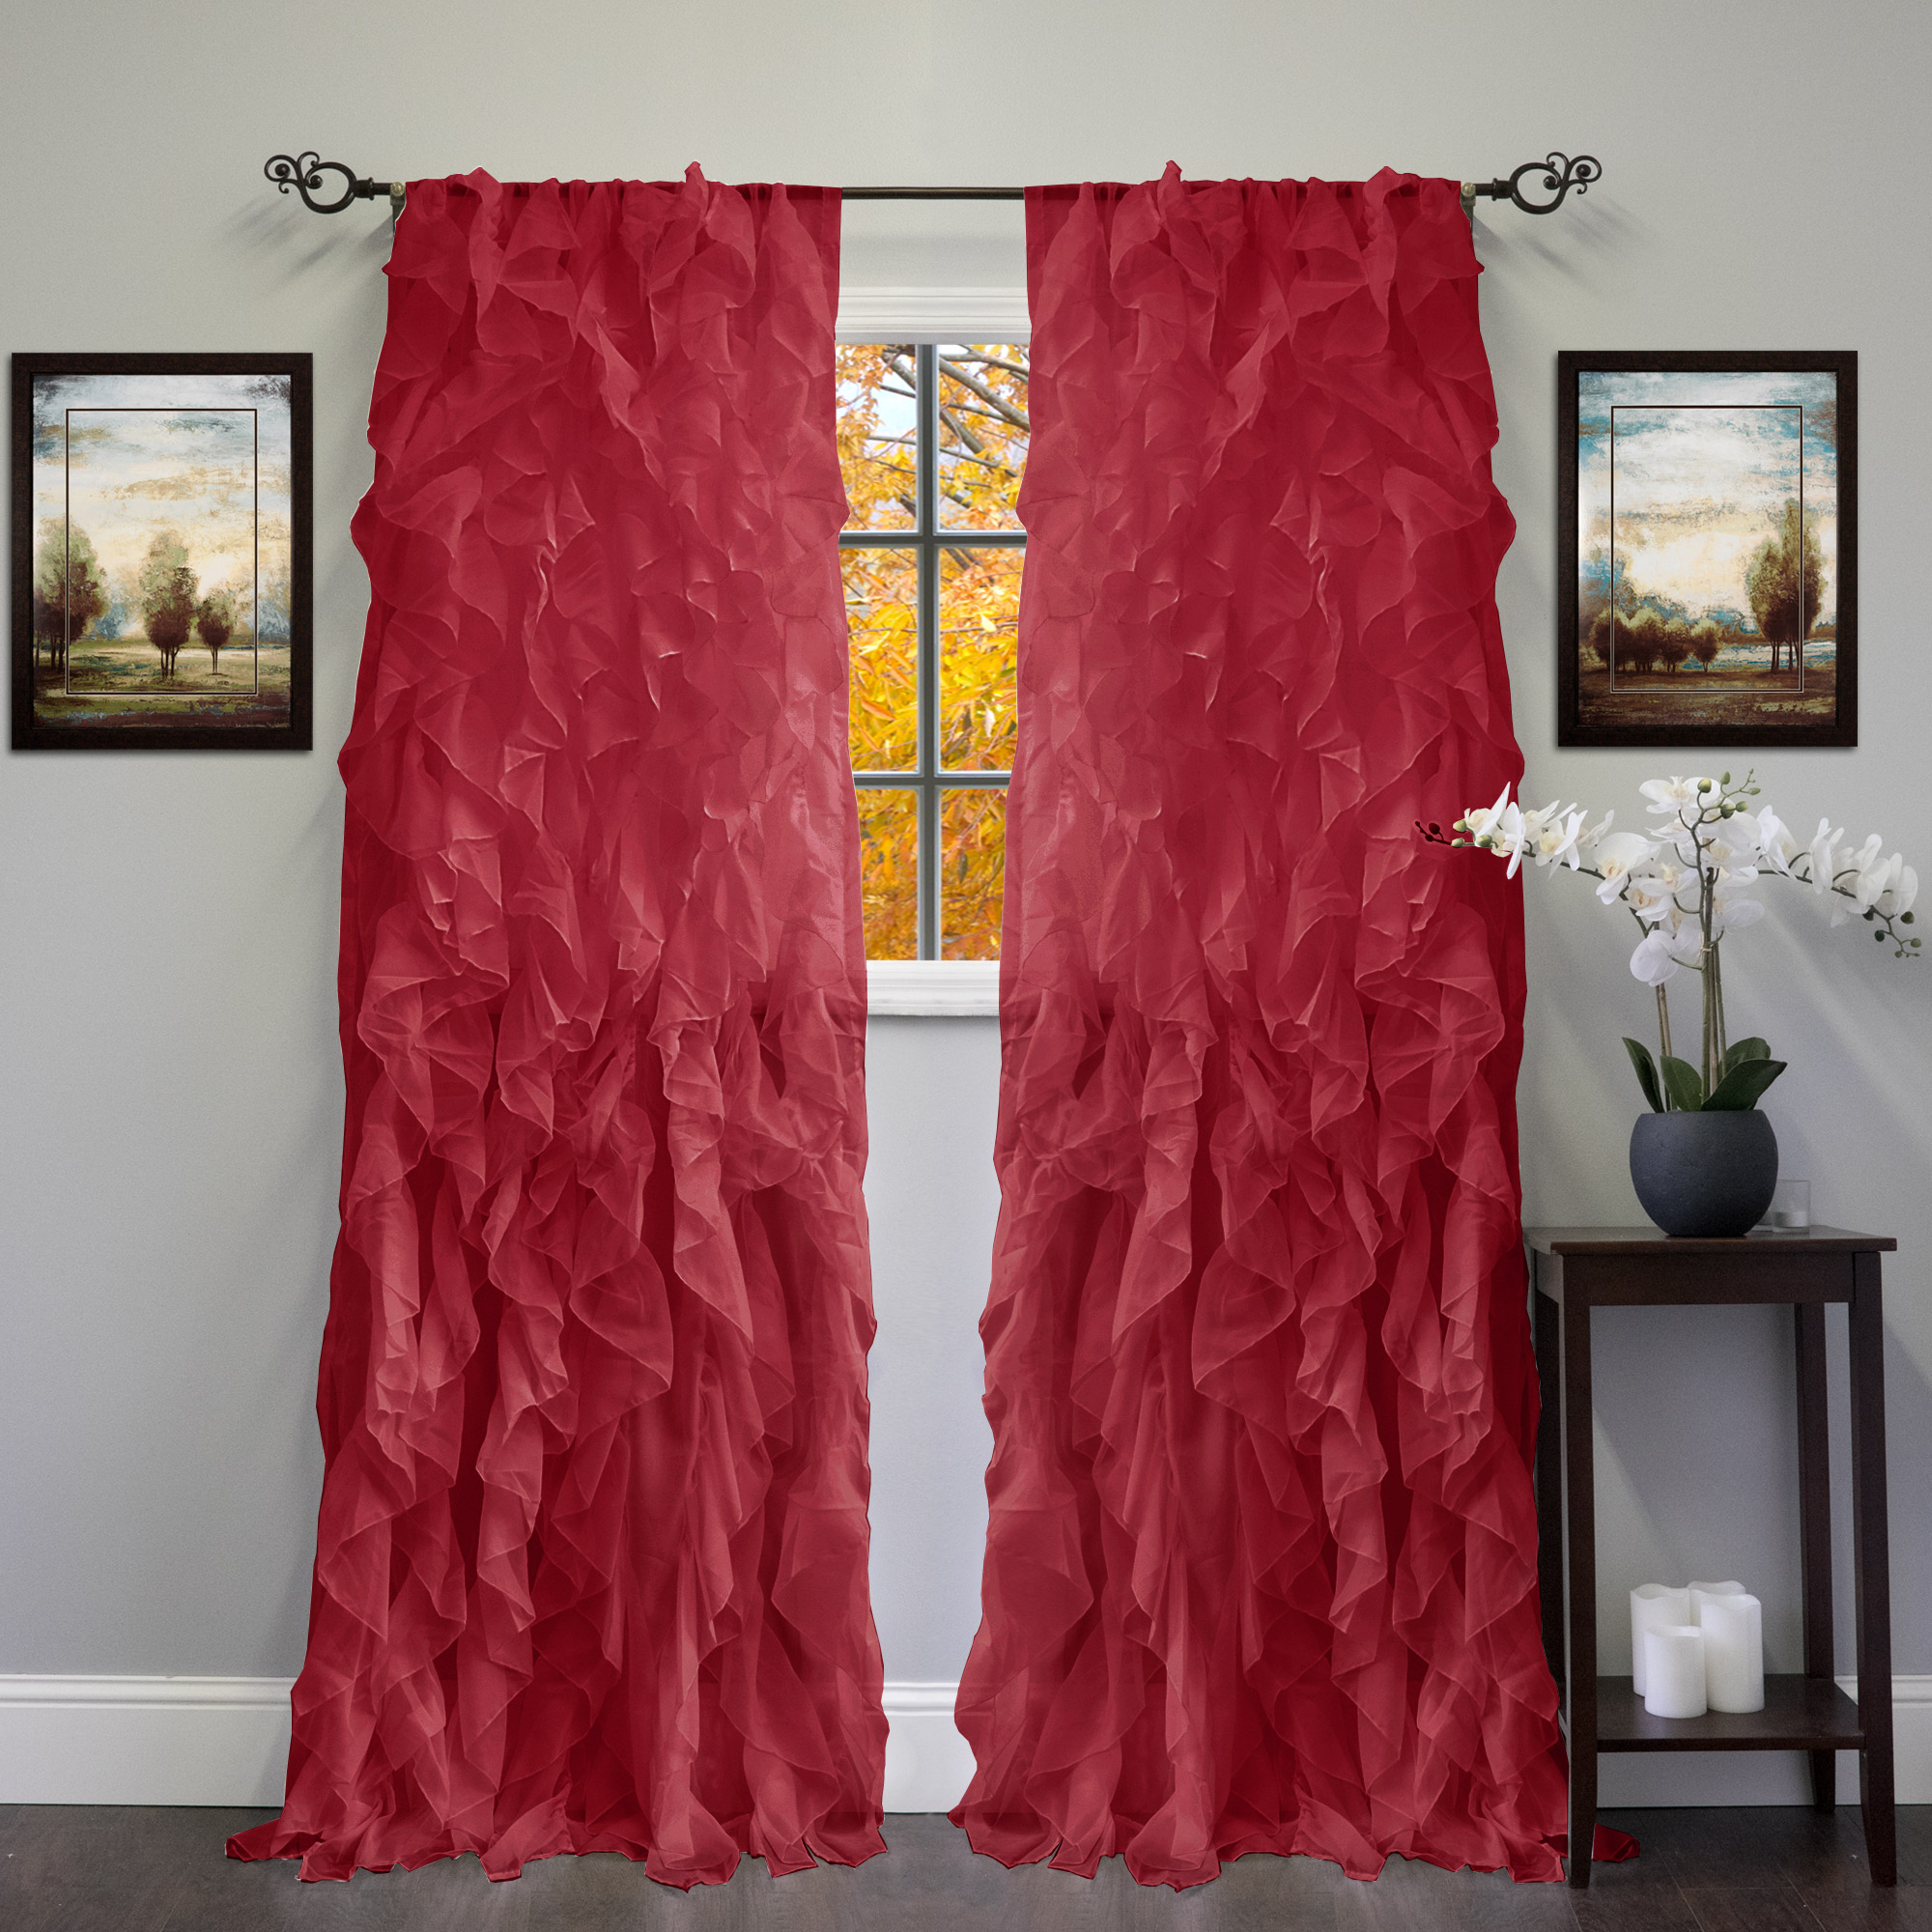 """Sheer Voile Ruffled Tier Window Curtain Panels Pertaining To Current Chic Sheer Voile Vertical Ruffled Tier Window Curtain Single Panel 50"""" X 84"""" (View 11 of 20)"""